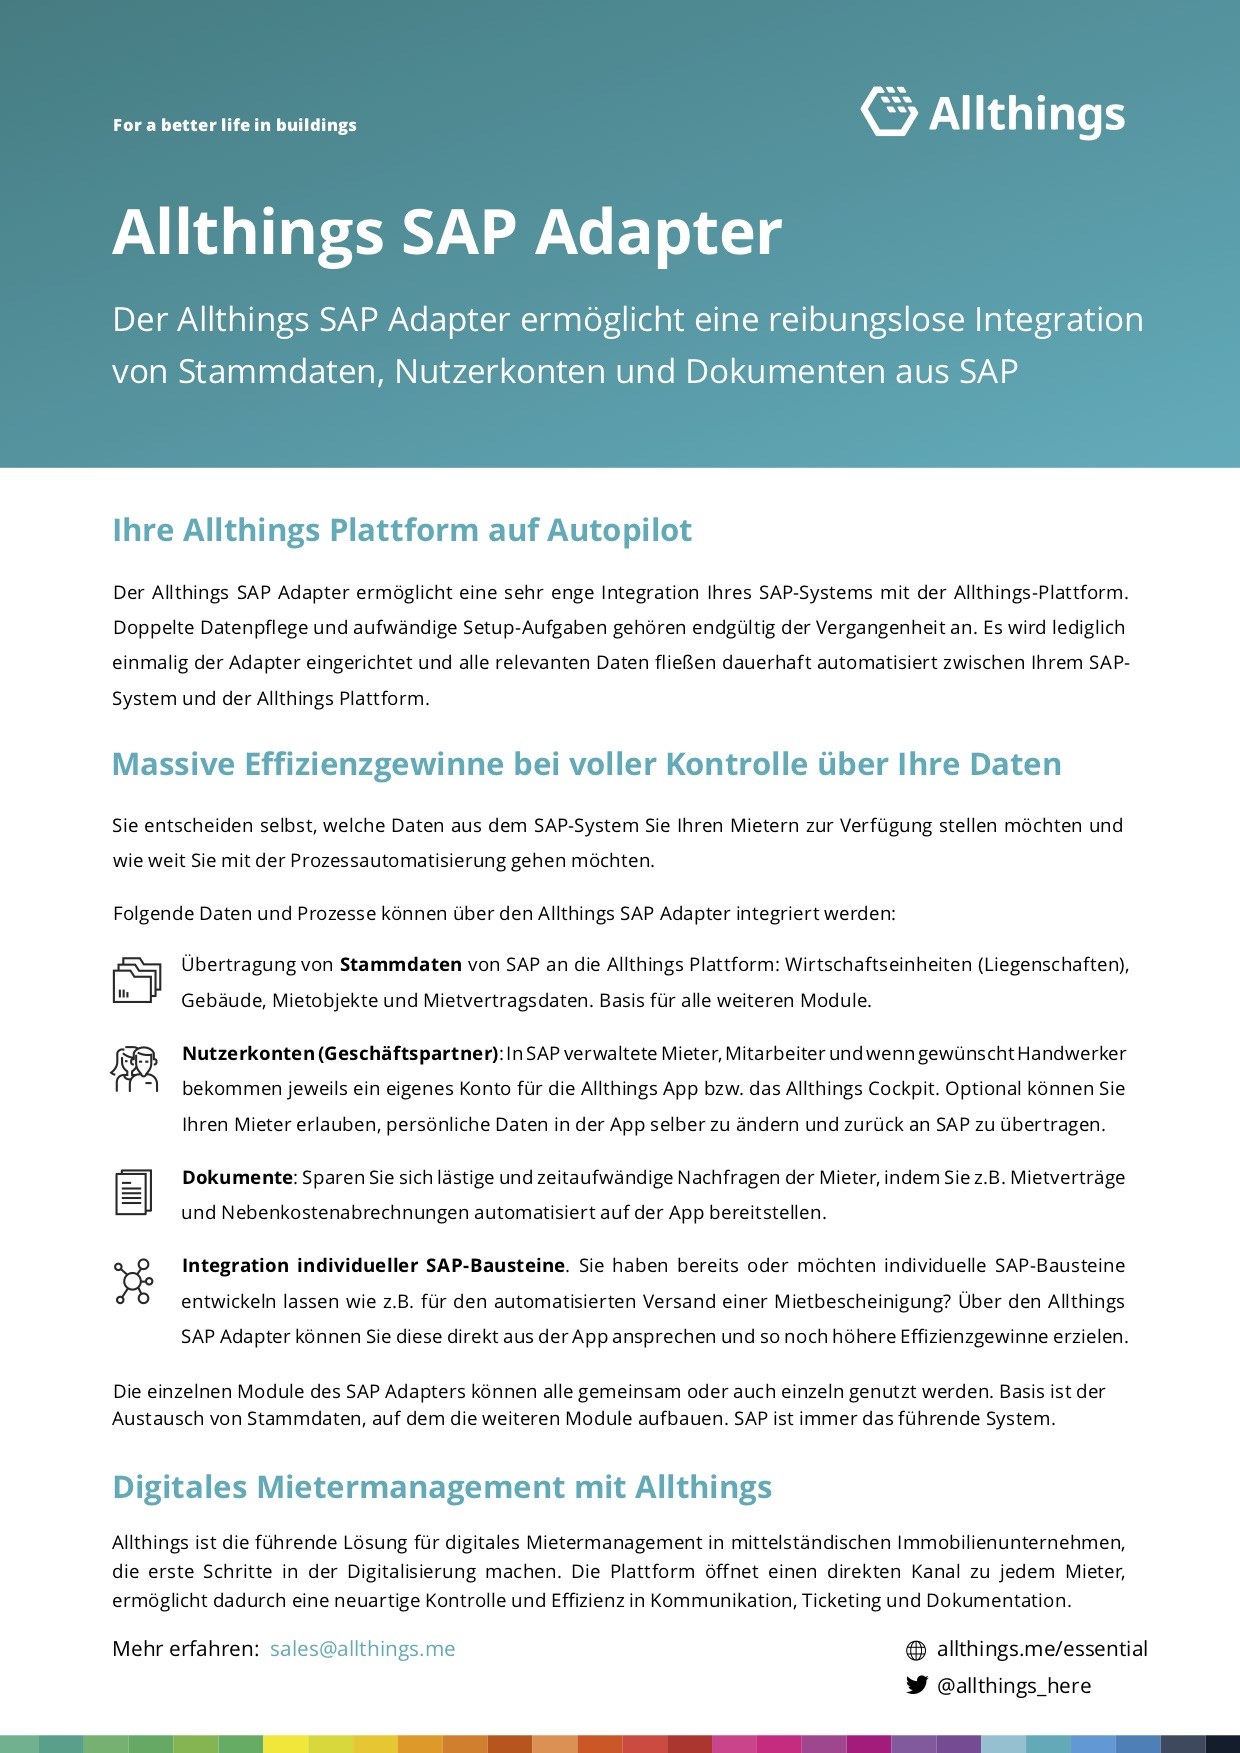 SAP one pager